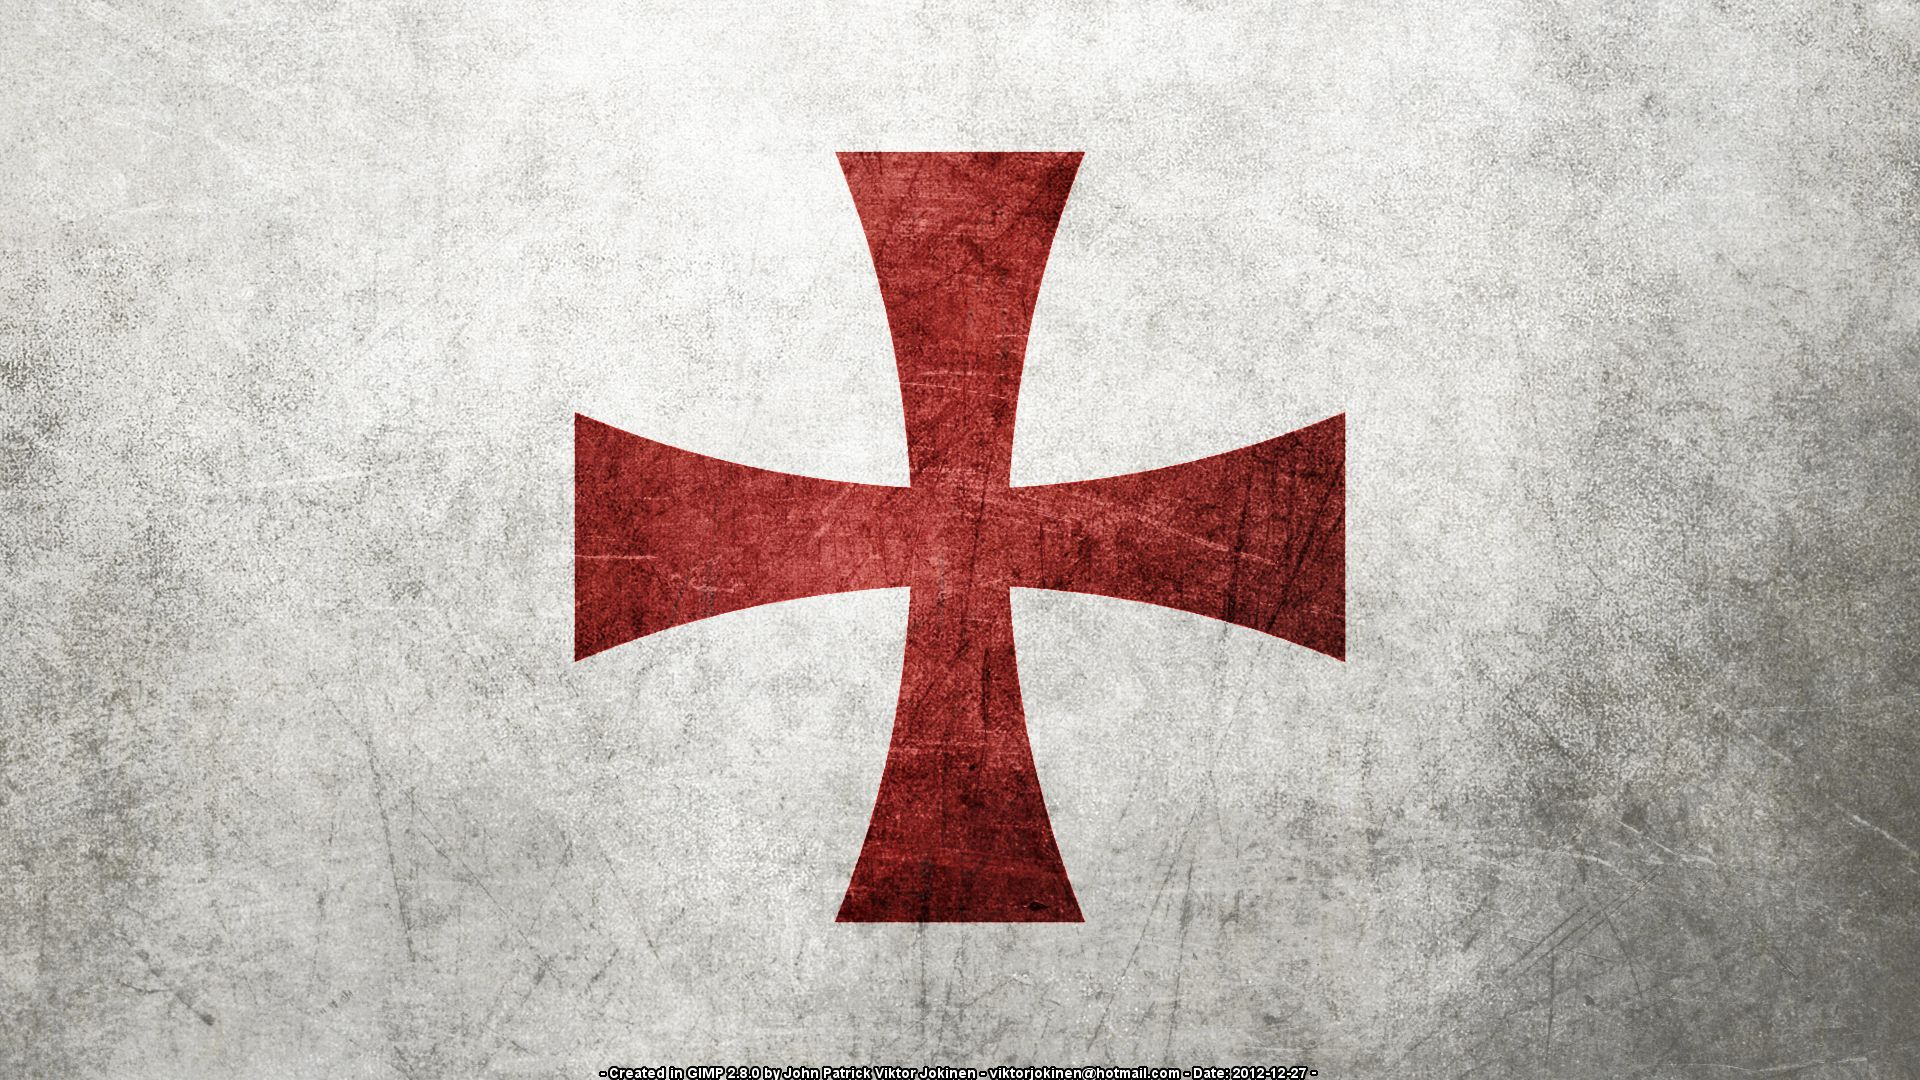 Templars hashashin wikia fandom powered by wikia for The knights templat